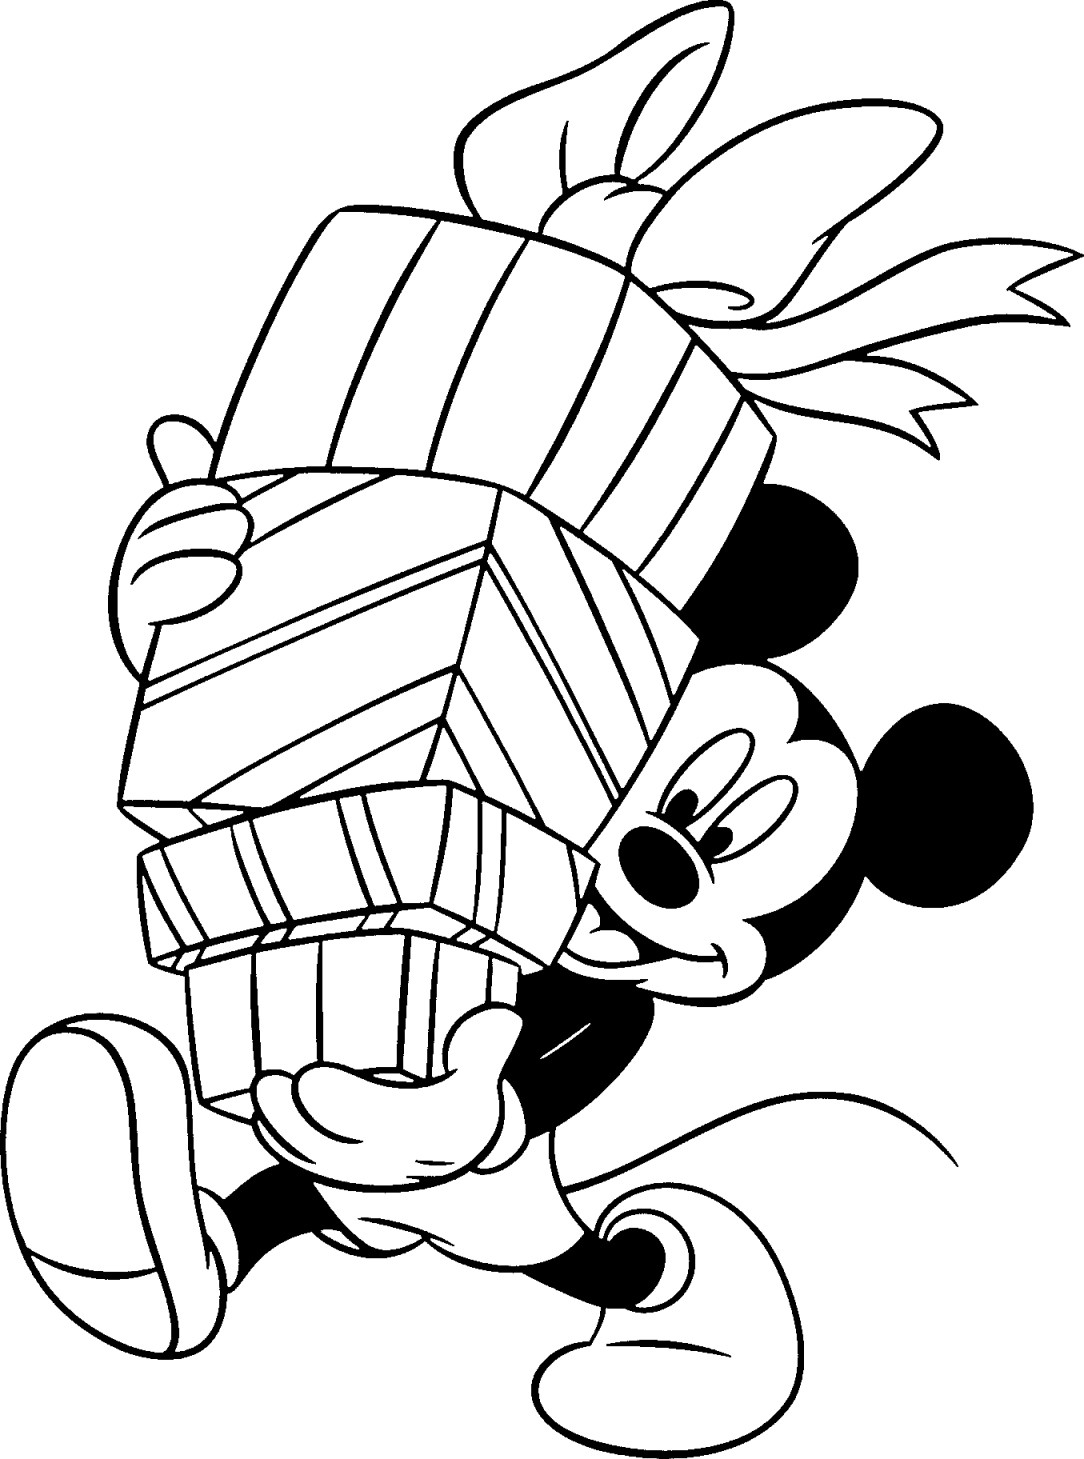 Fine Free Disney Christmas Printable Coloring Pages For Kids Honey Lime Easy Diy Christmas Decorations Tissureus